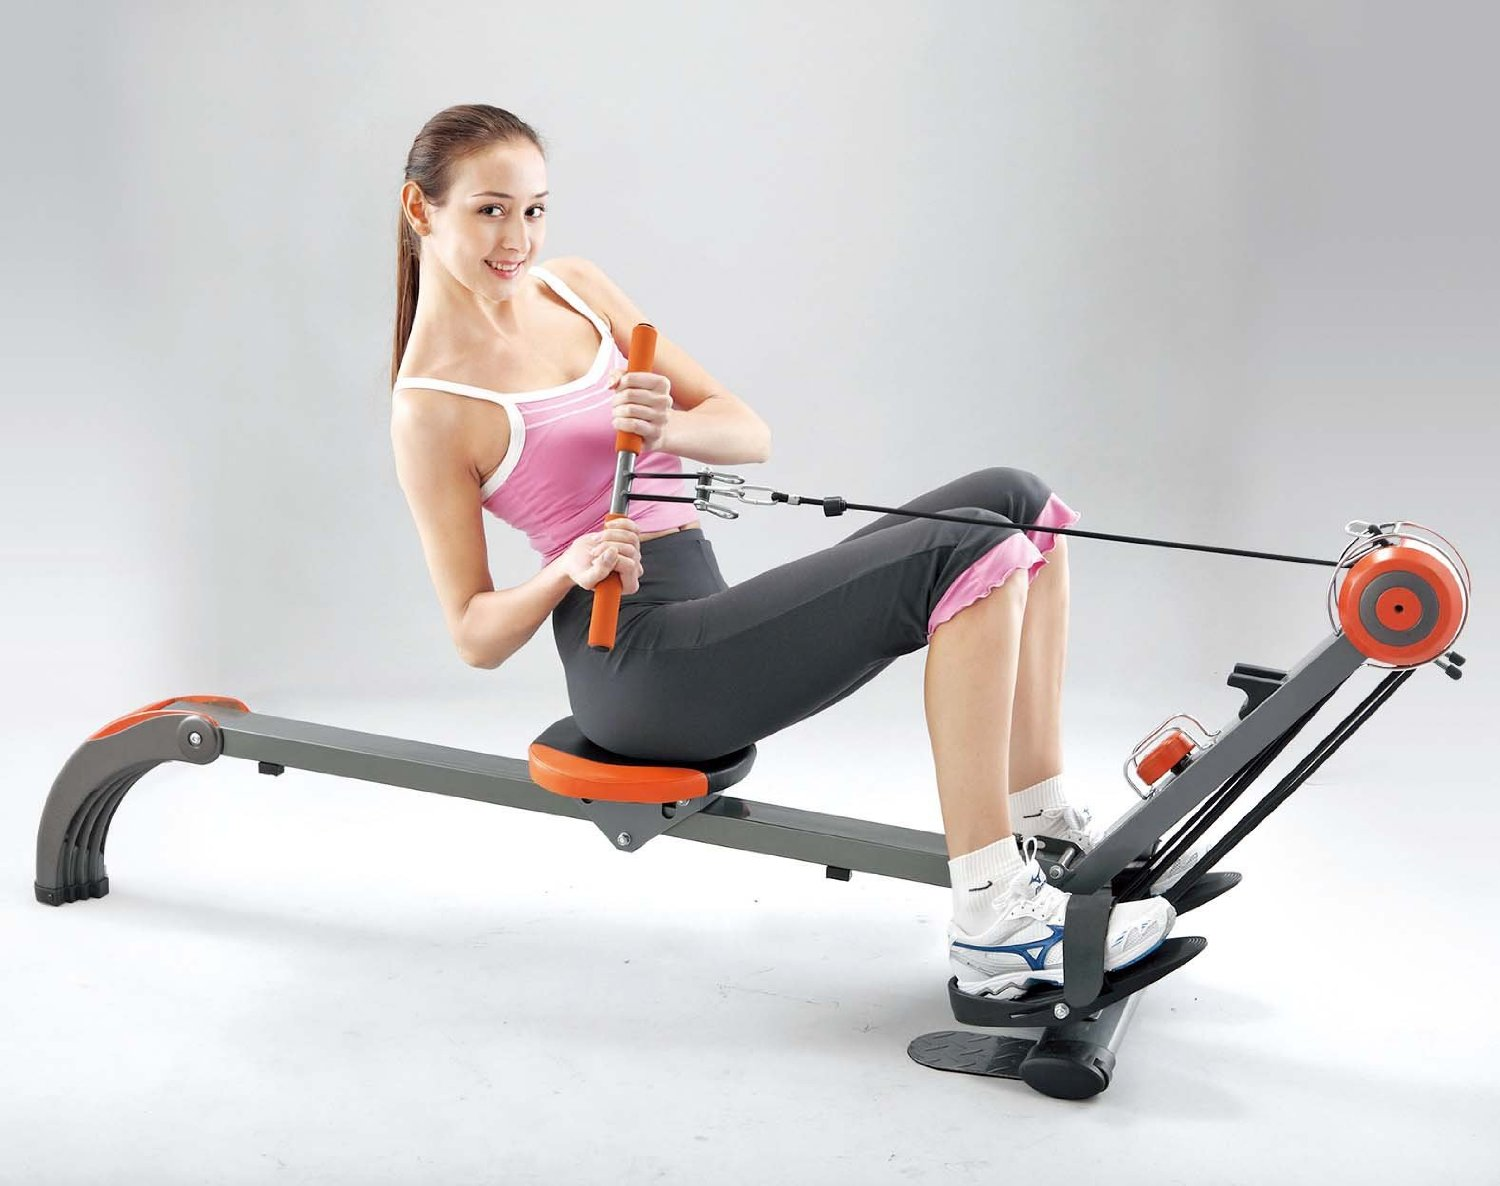 Body Sculpture BR3010 Rower and Gym Review Fitness Equipment